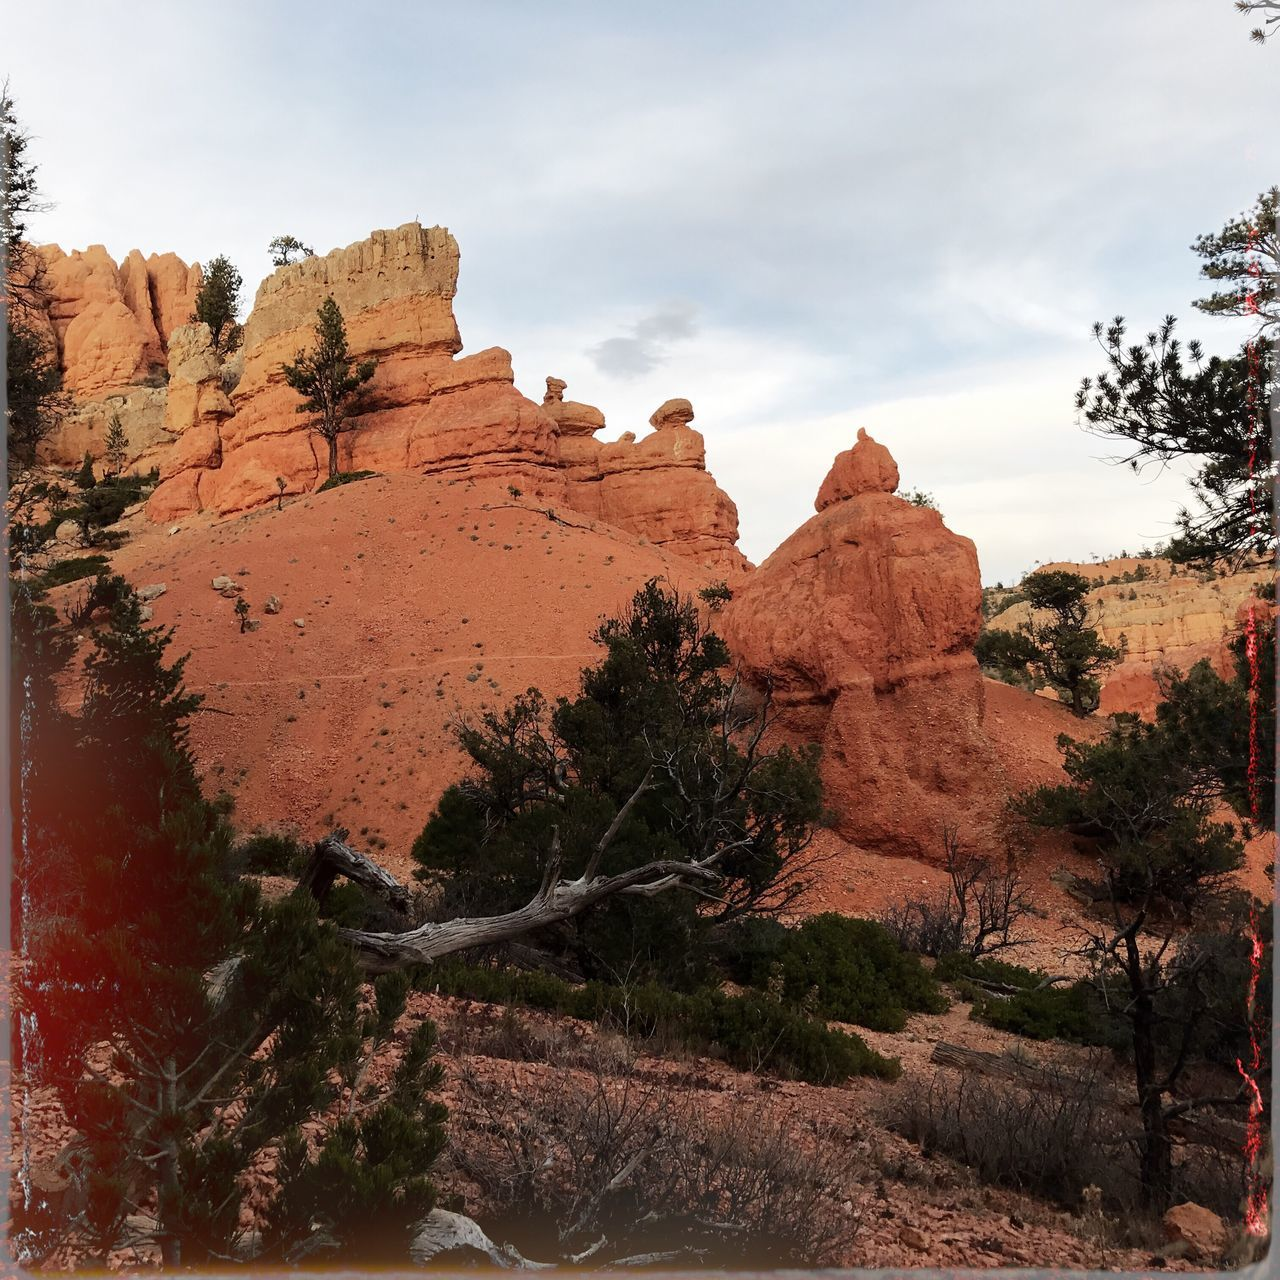 rock formation, tranquility, tranquil scene, nature, beauty in nature, rock - object, tree, scenics, sky, geology, outdoors, landscape, physical geography, no people, day, cliff, arid climate, mountain